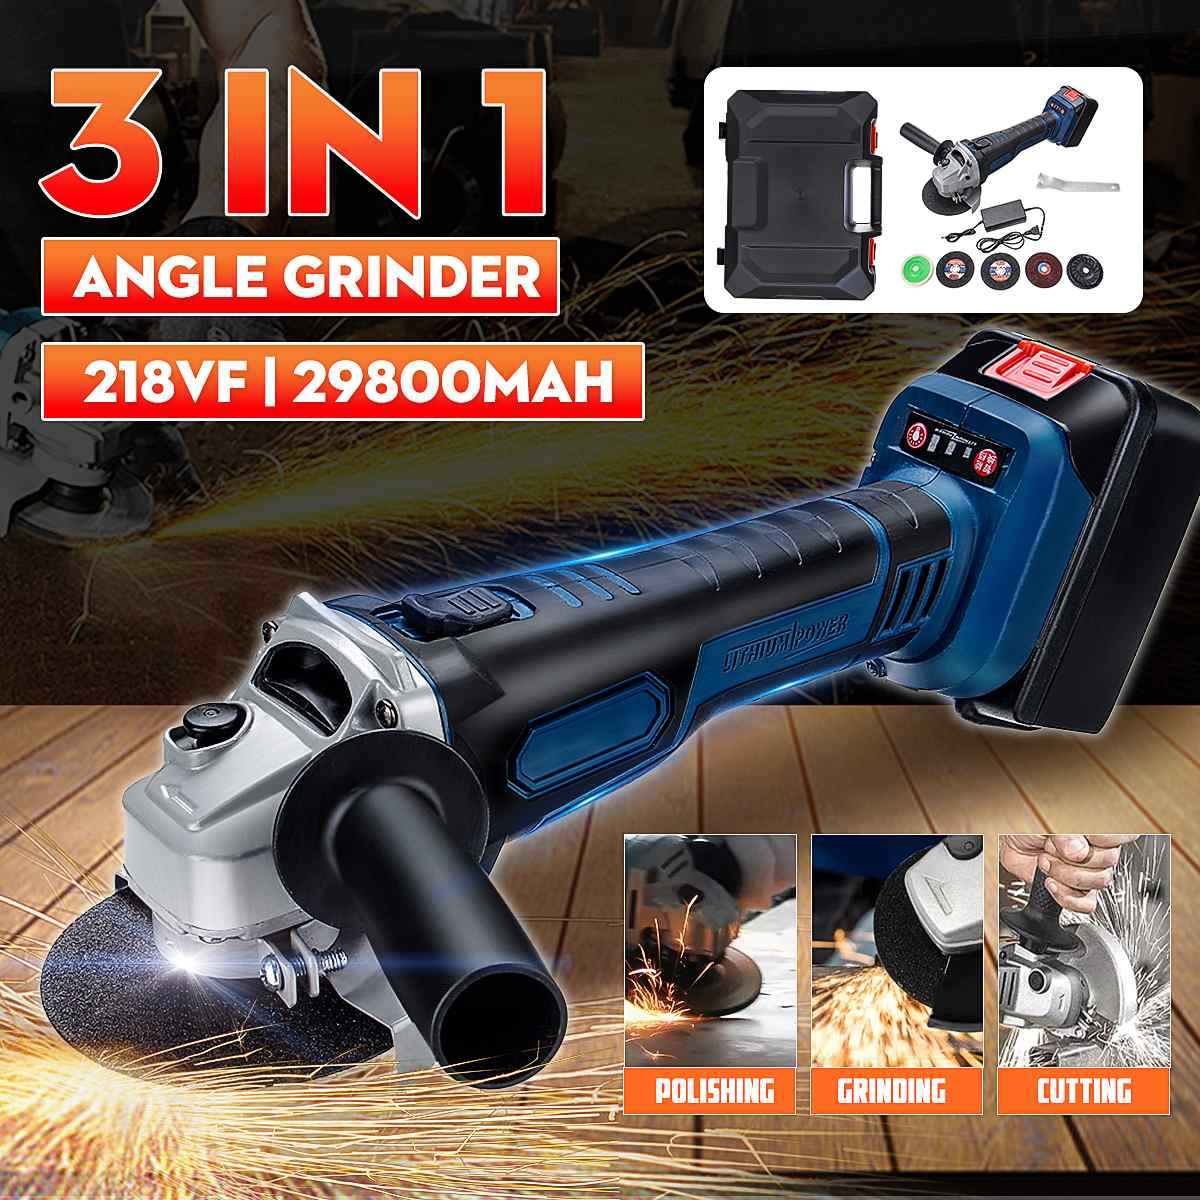 Rechargeable Cordless Brushless Electric 218VF 29800mAh Angle Grinder with 5pcs Polishing Ginding Cutting Disc for WoodworkingRechargeable Cordless Brushless Electric 218VF 29800mAh Angle Grinder with 5pcs Polishing Ginding Cutting Disc for Woodworking